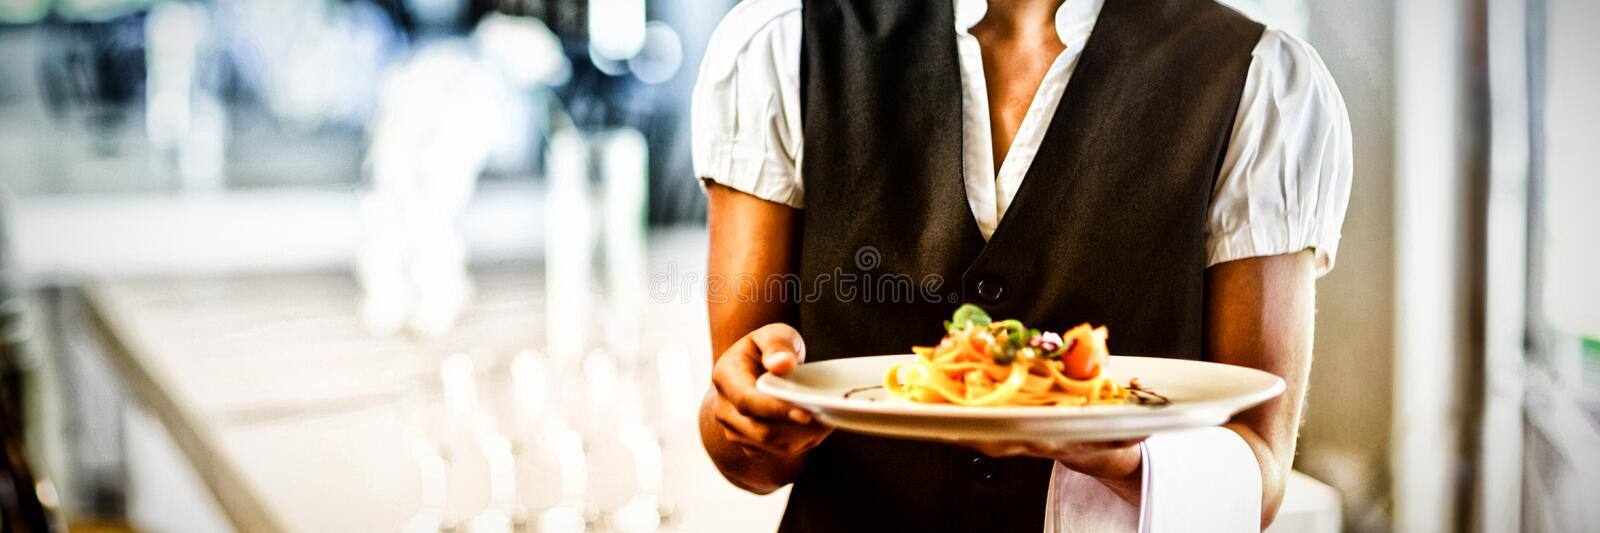 Waitress holding plate of meal in a restaurant stock photo